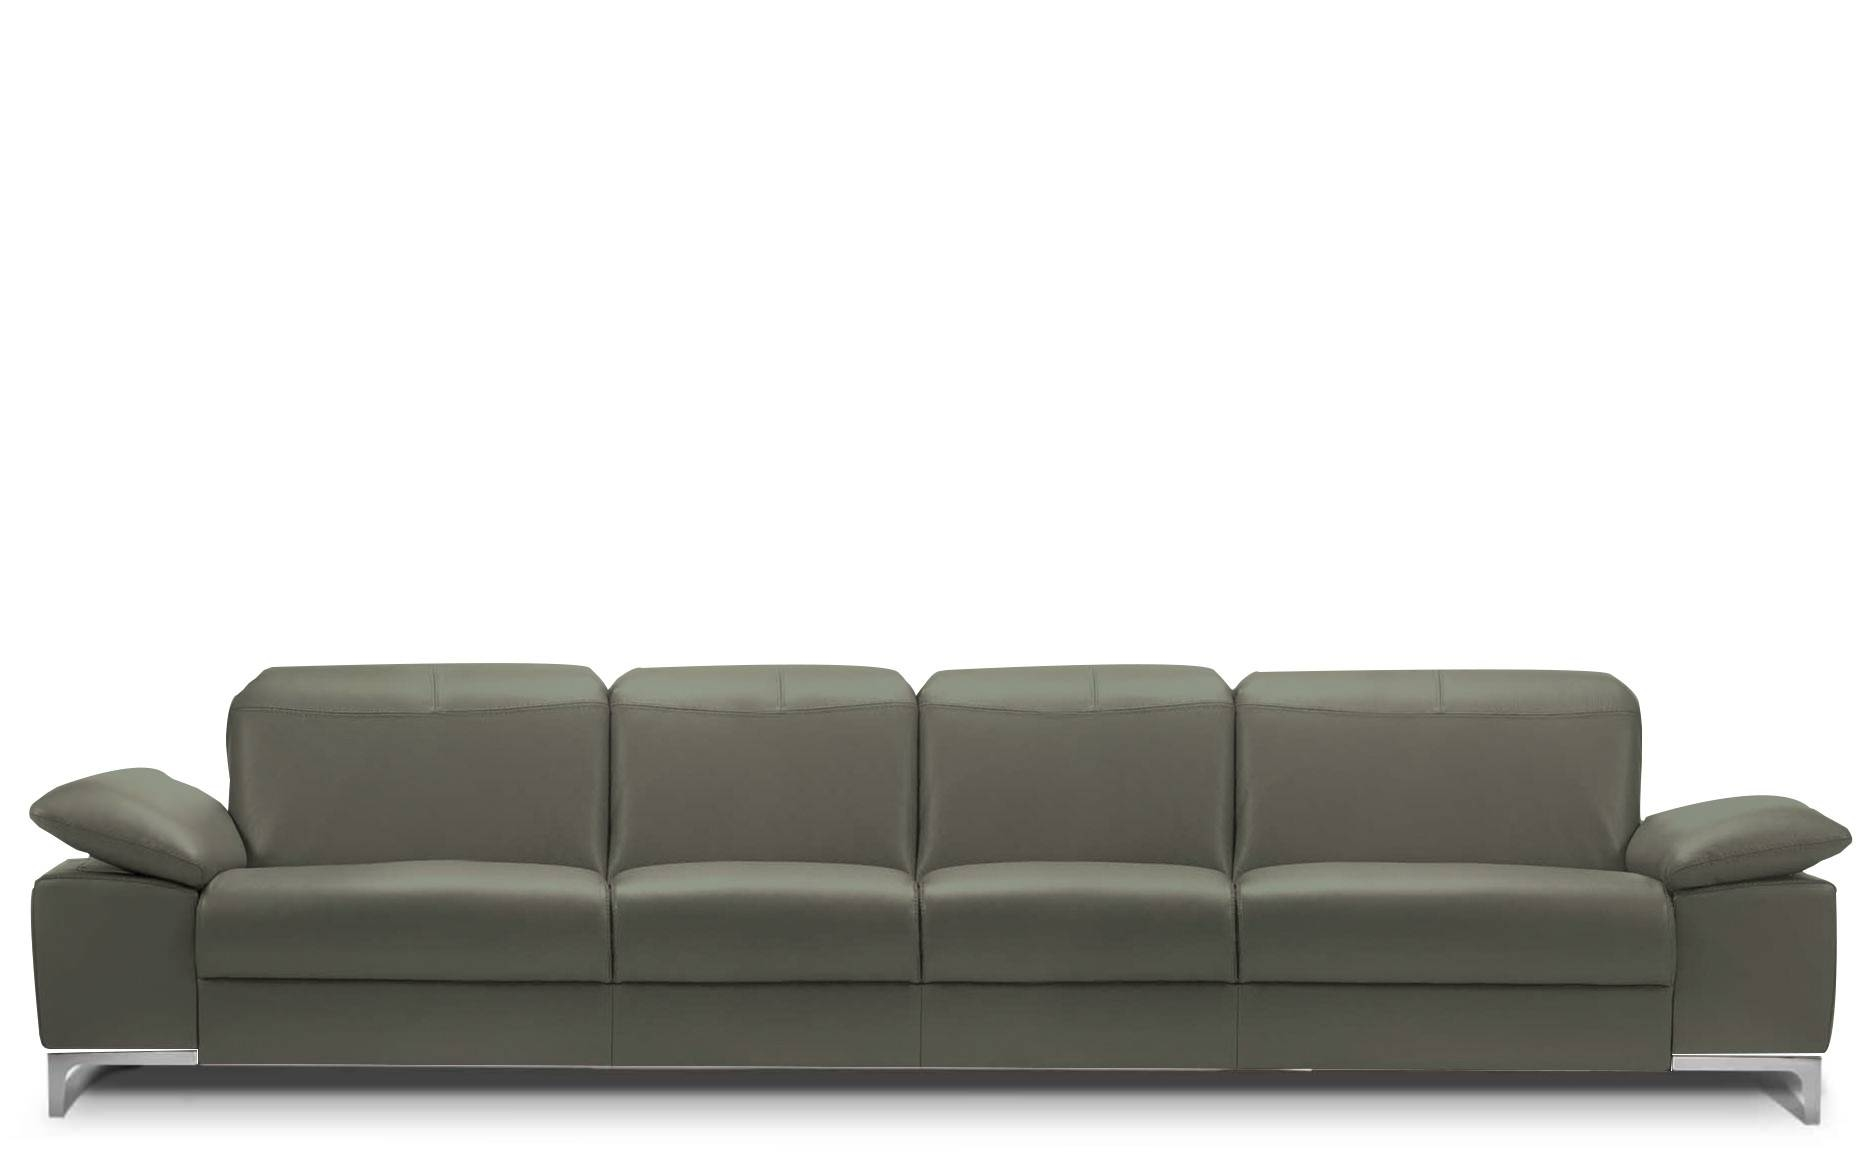 Rom Chronos 4 Seater Leather Sofa | Buy At Kontenta pertaining to Four Seat Sofas (Image 27 of 30)